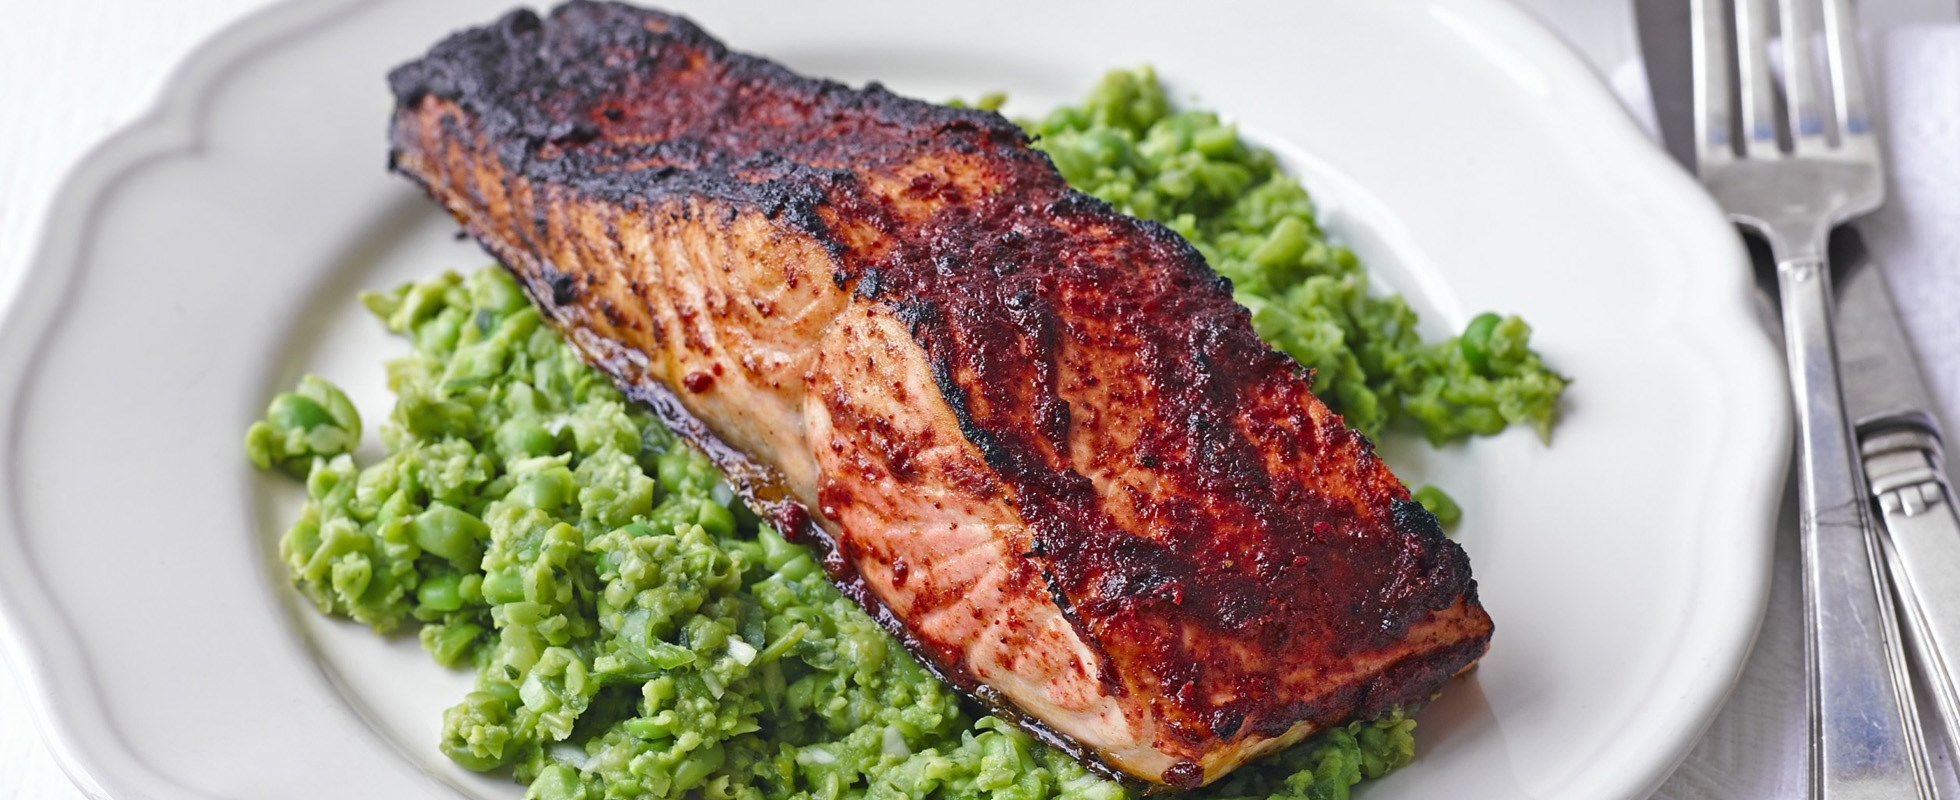 Spicy Grilled Salmon With Pea And Mint Mash One Of Our Most Popular Recipes Made Indian